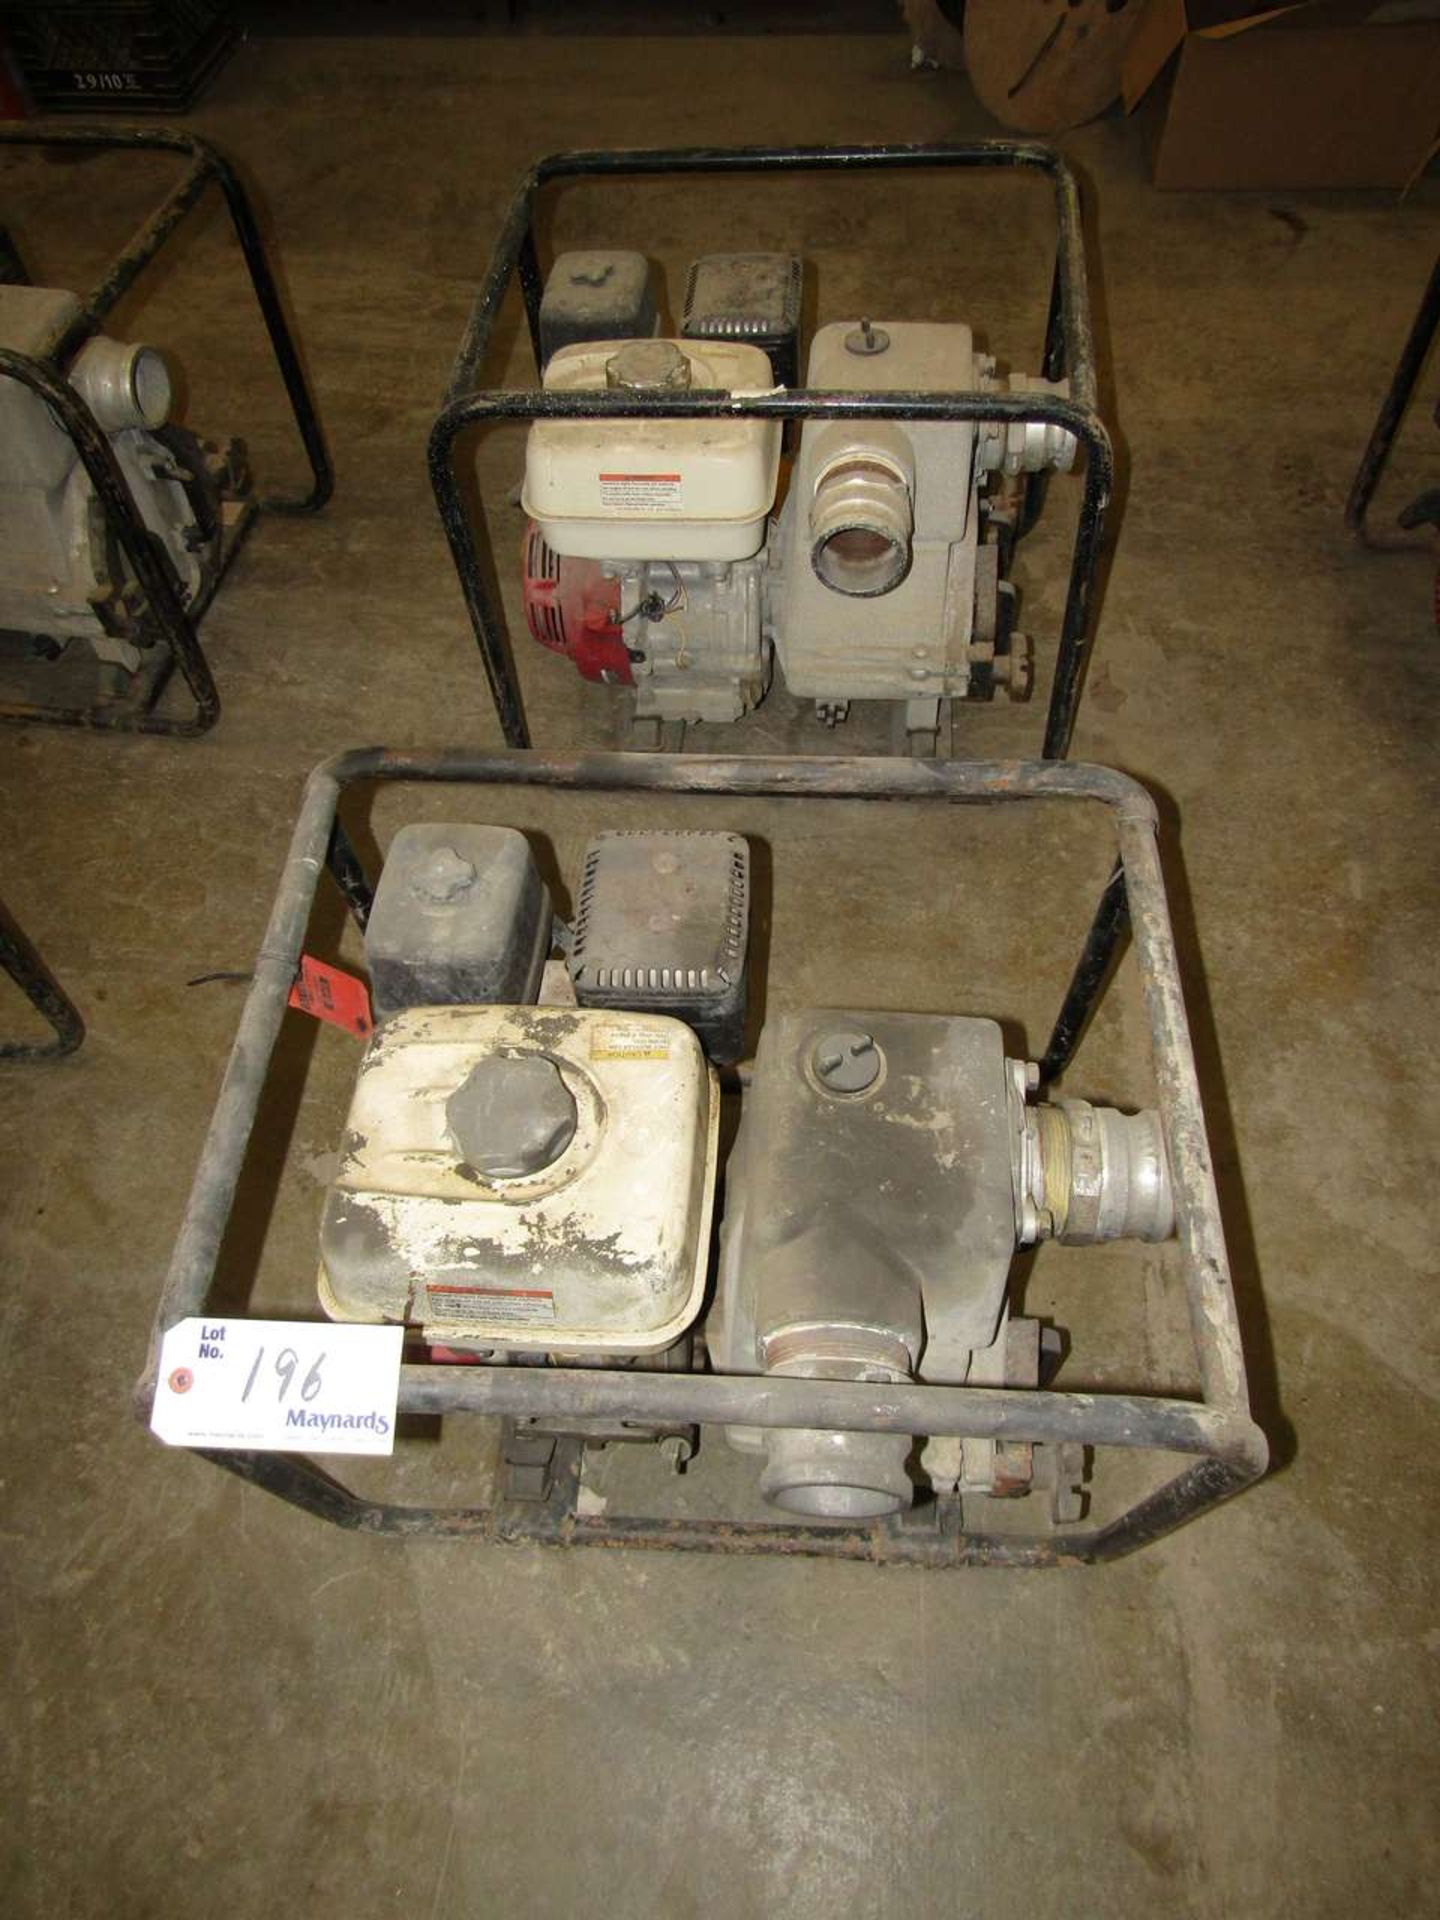 Lot 196 - Honda GX 240 Water Pumps